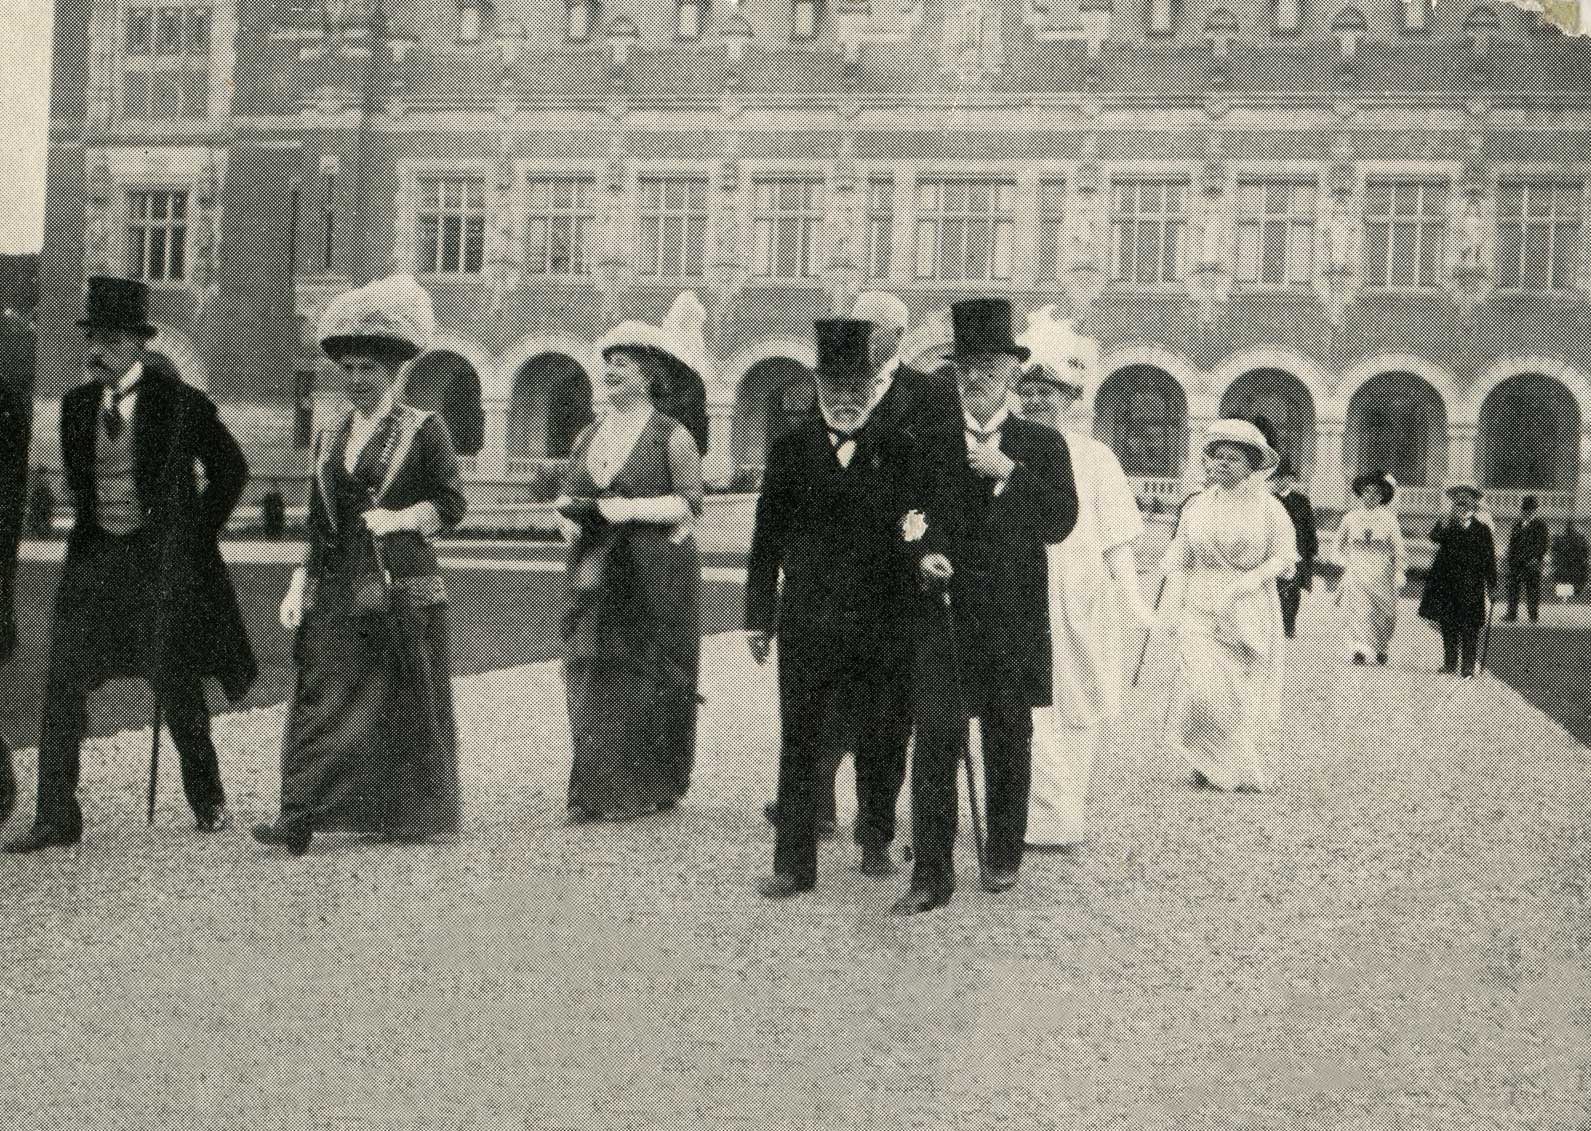 Andrew Carnegie at the opening of The Peace Palace, 1913